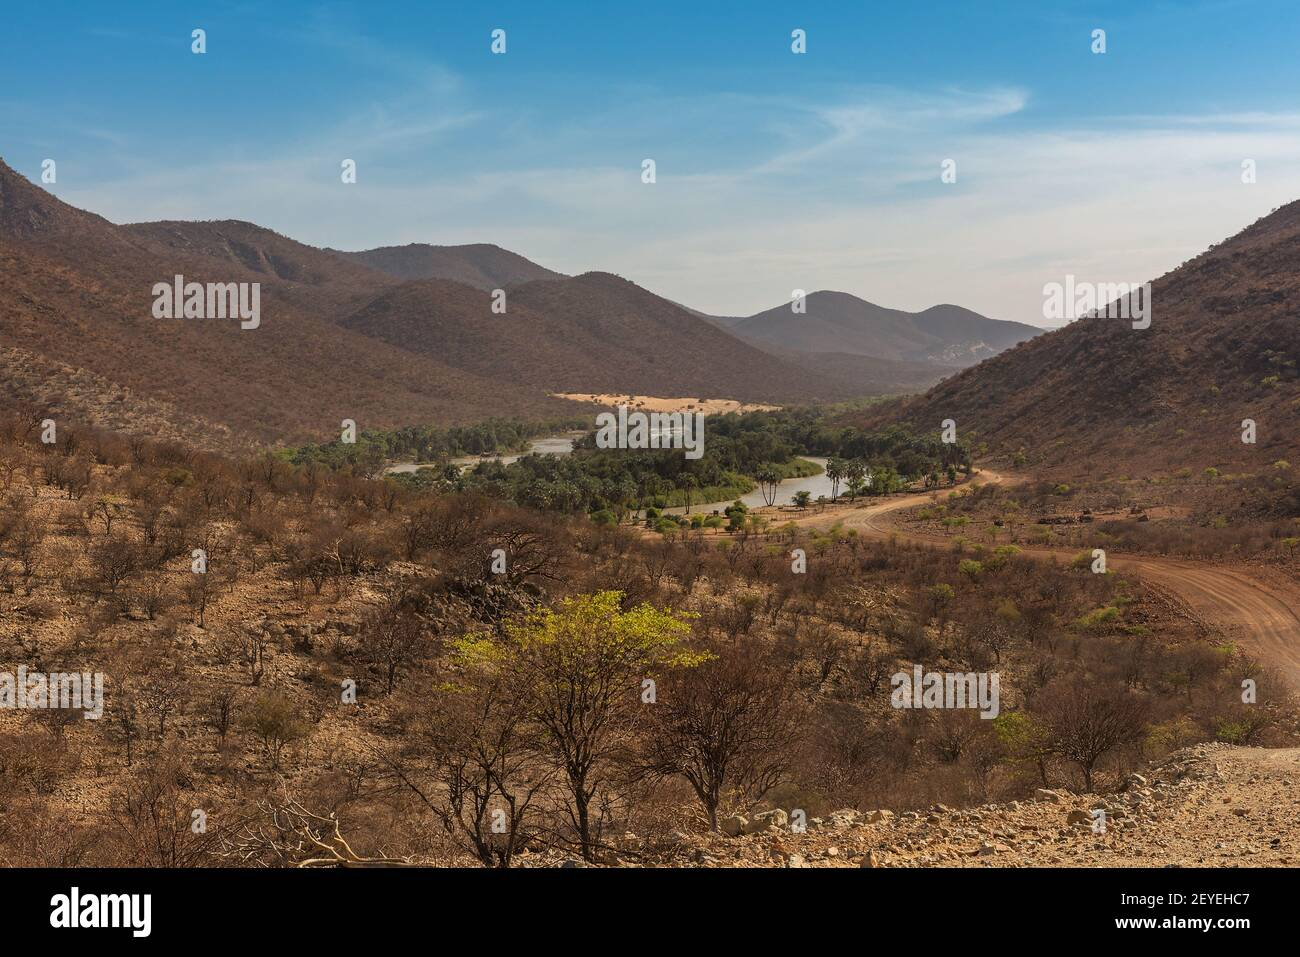 Landscape view of the Kunene River, the border river between Namibia and Angola Stock Photo